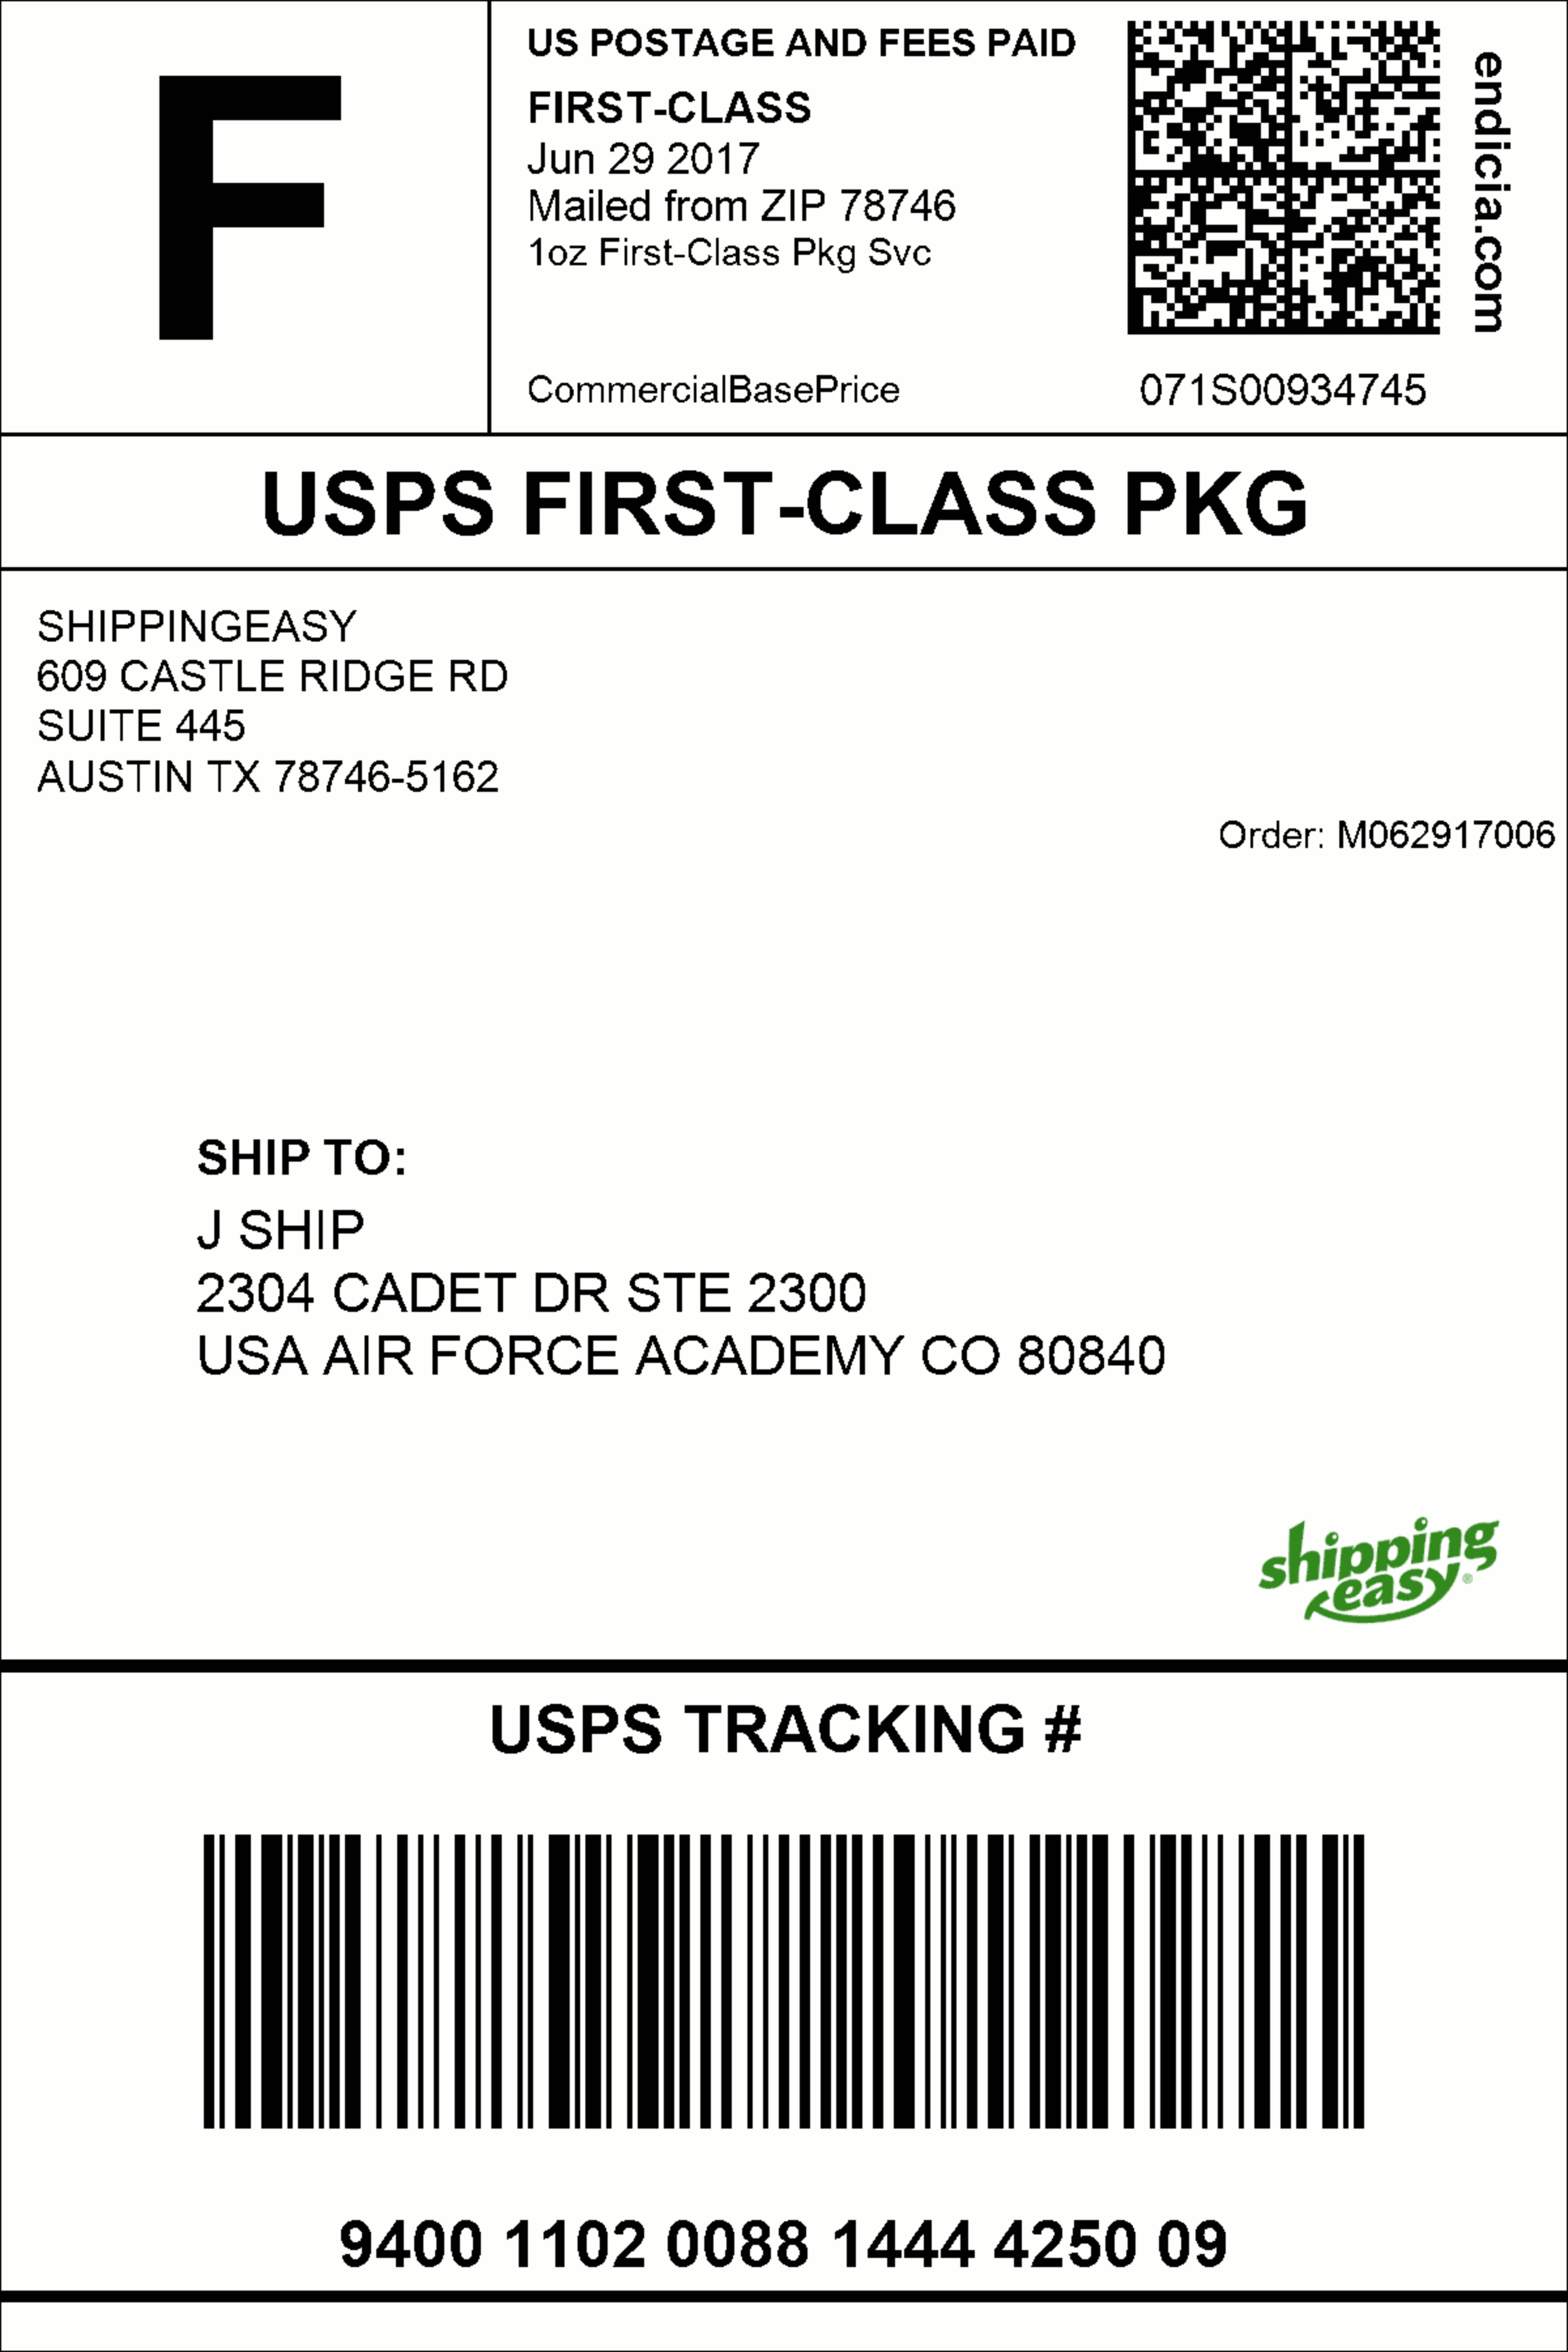 How to: Add my logo to shipping labels – ShippingEasy Knowledge Base